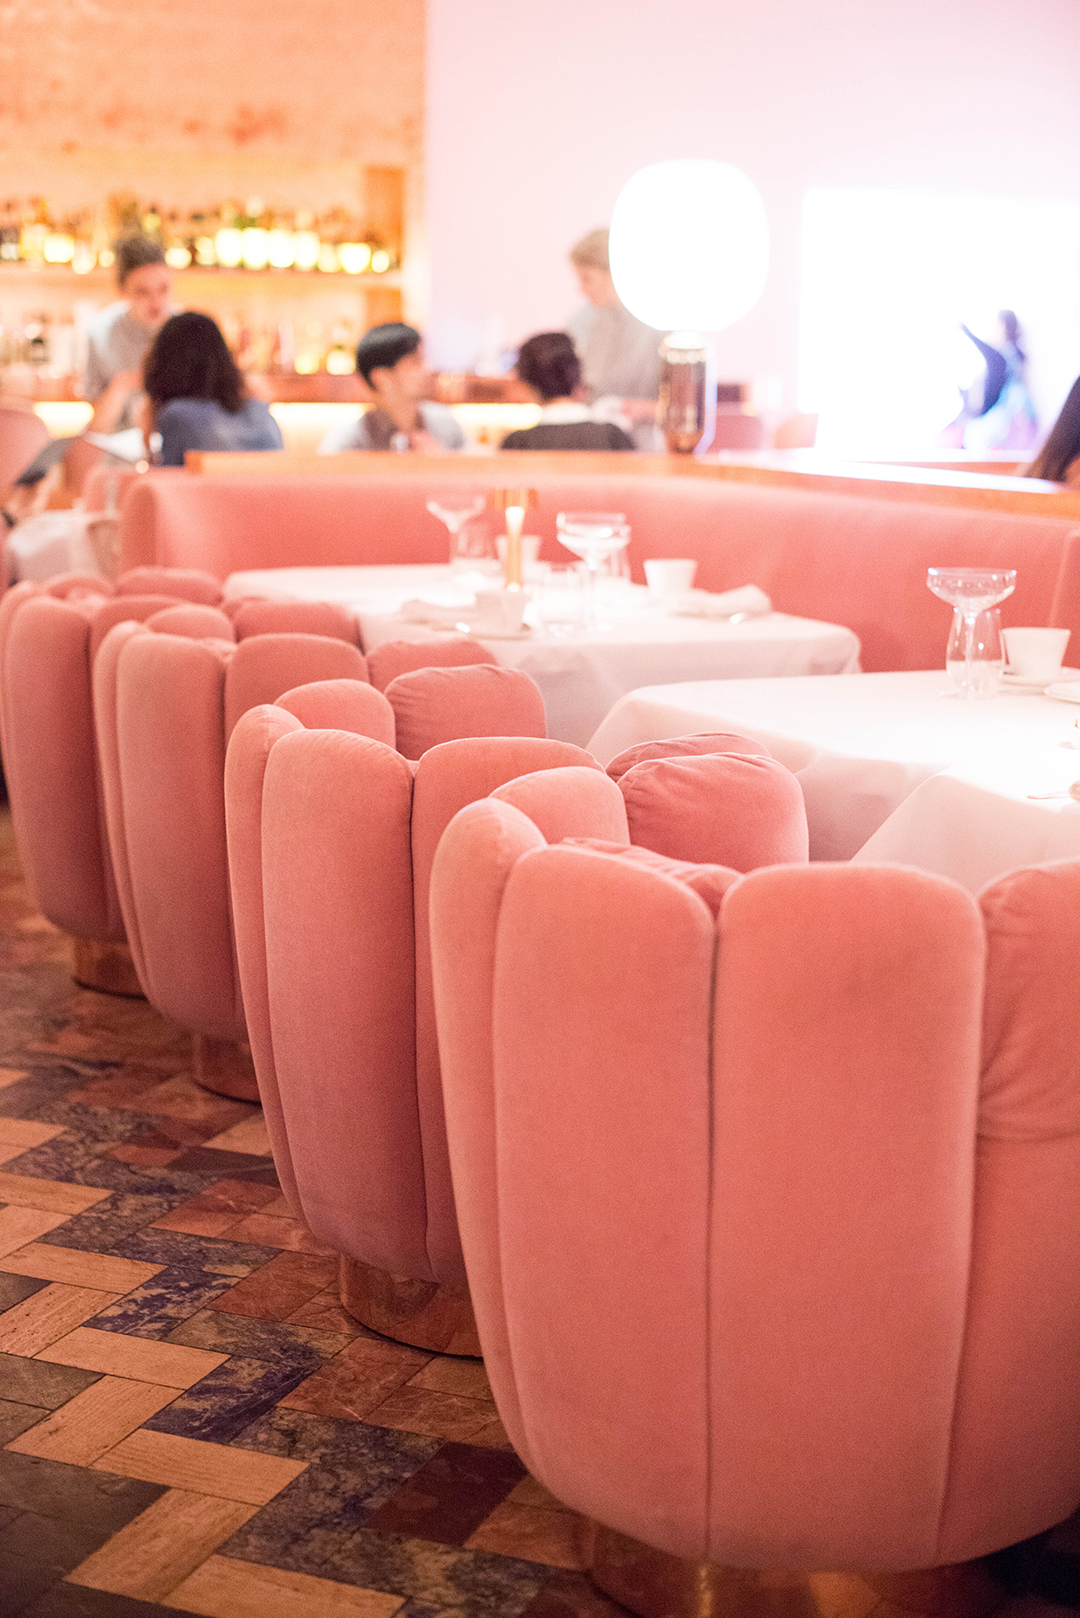 Afternoon Tea at Sketch London | The Style Scribe